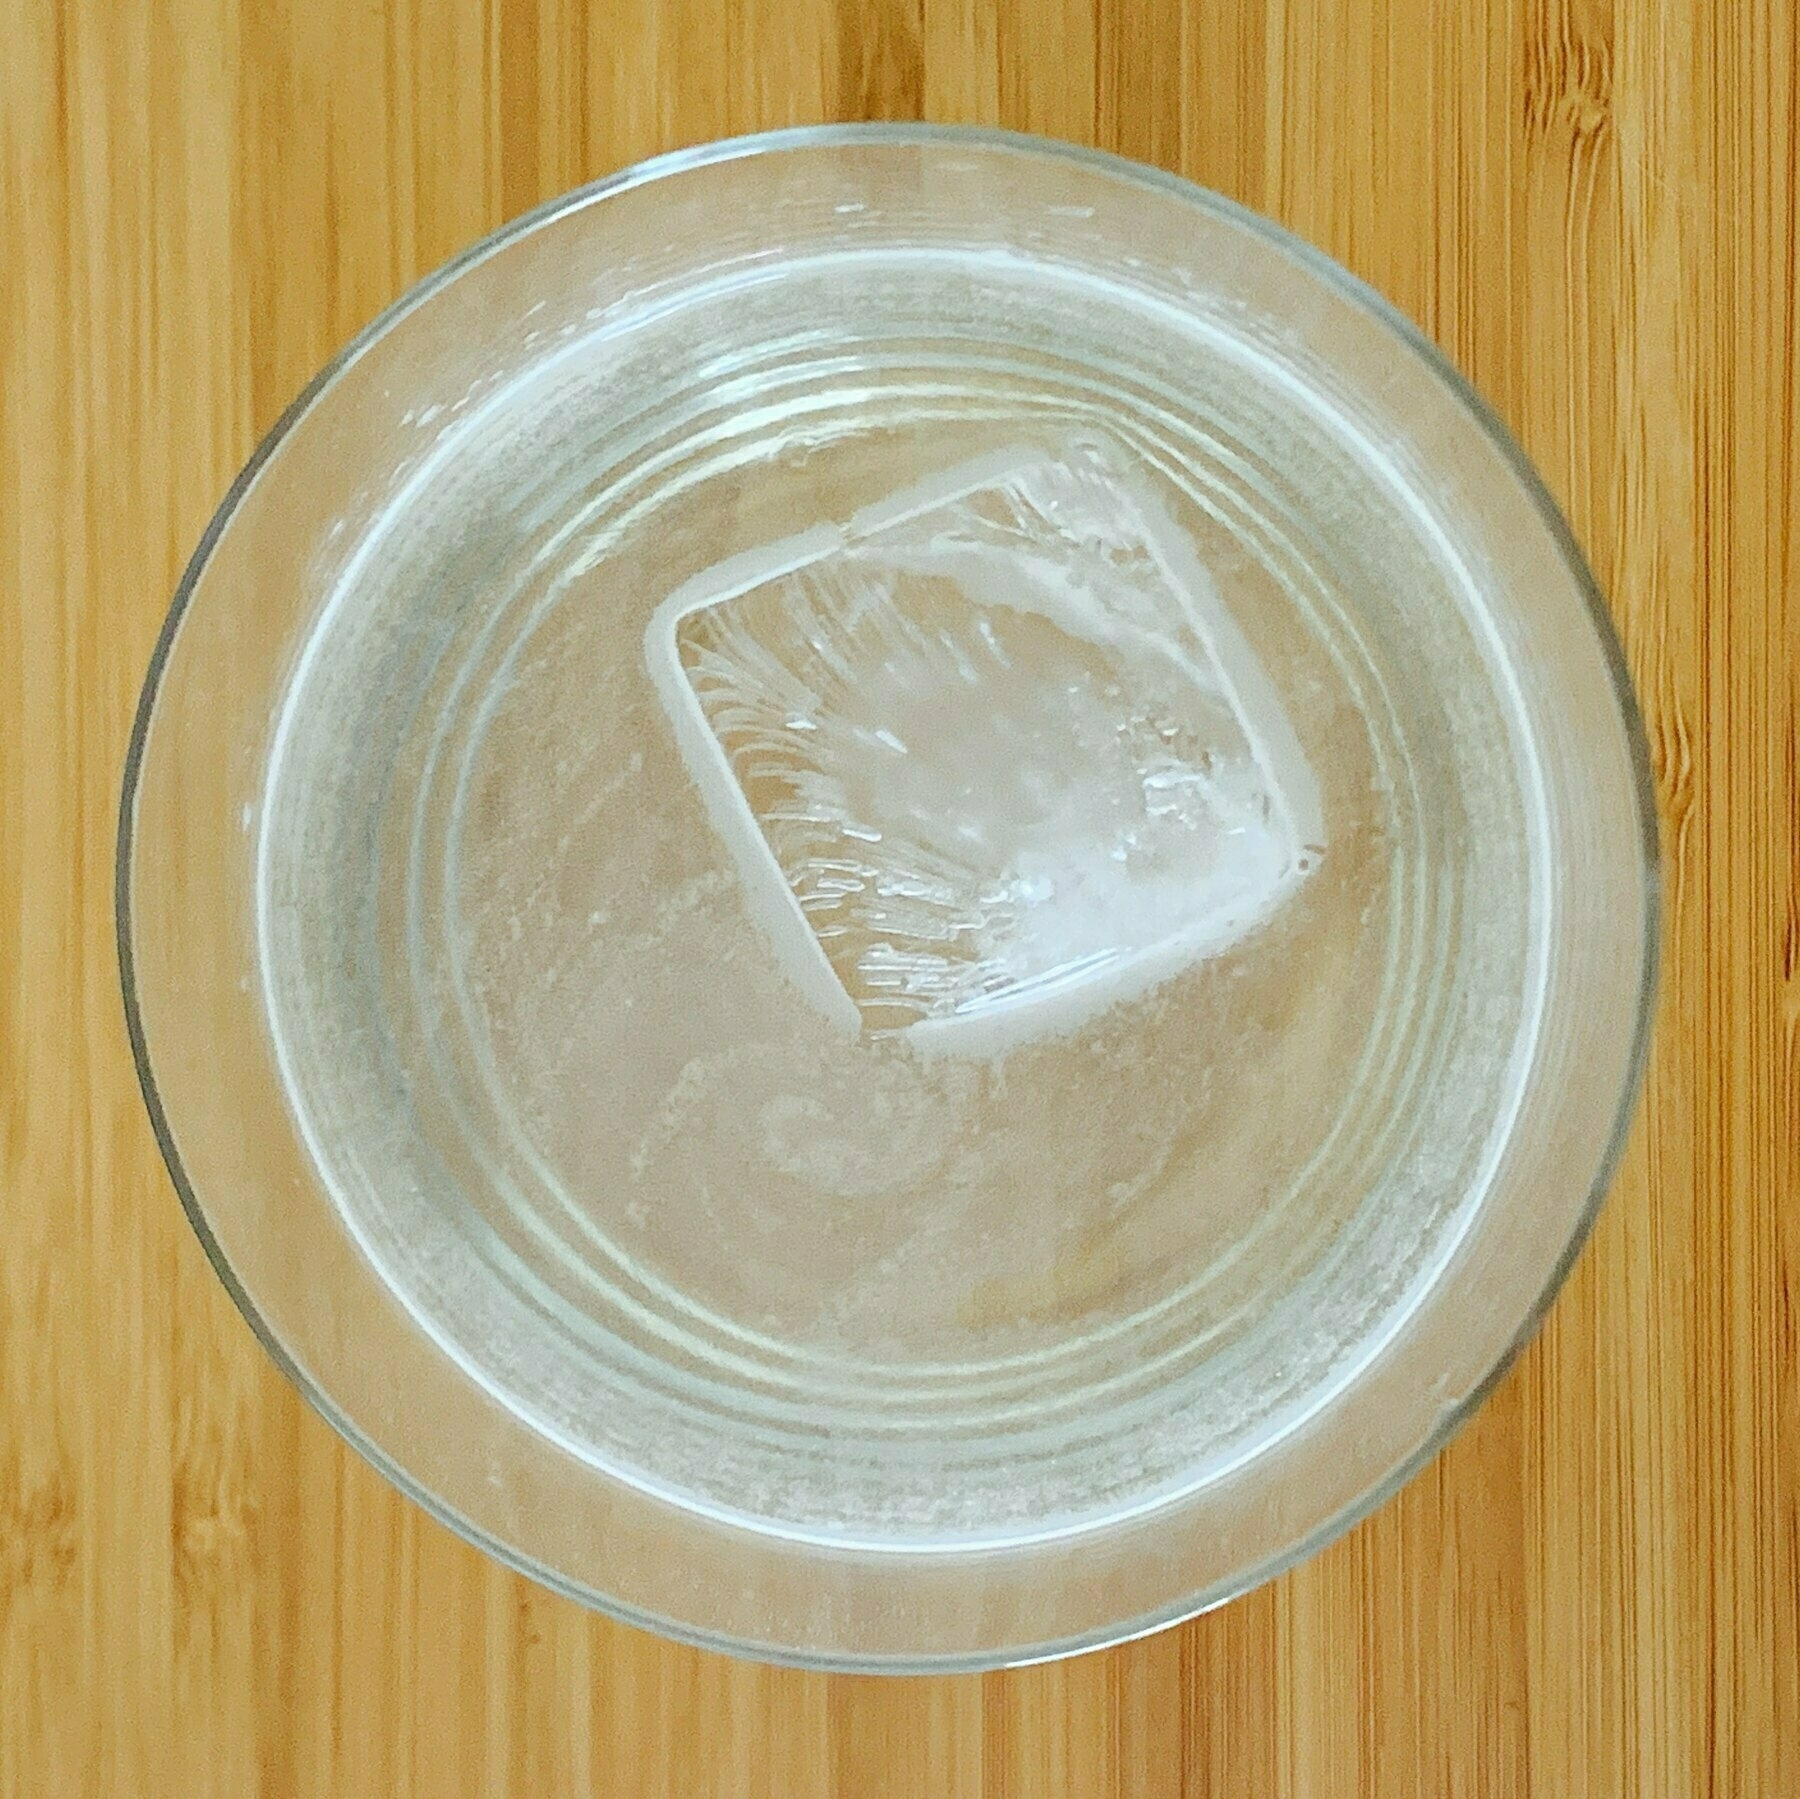 Top down look at a glass of water with an ice cube